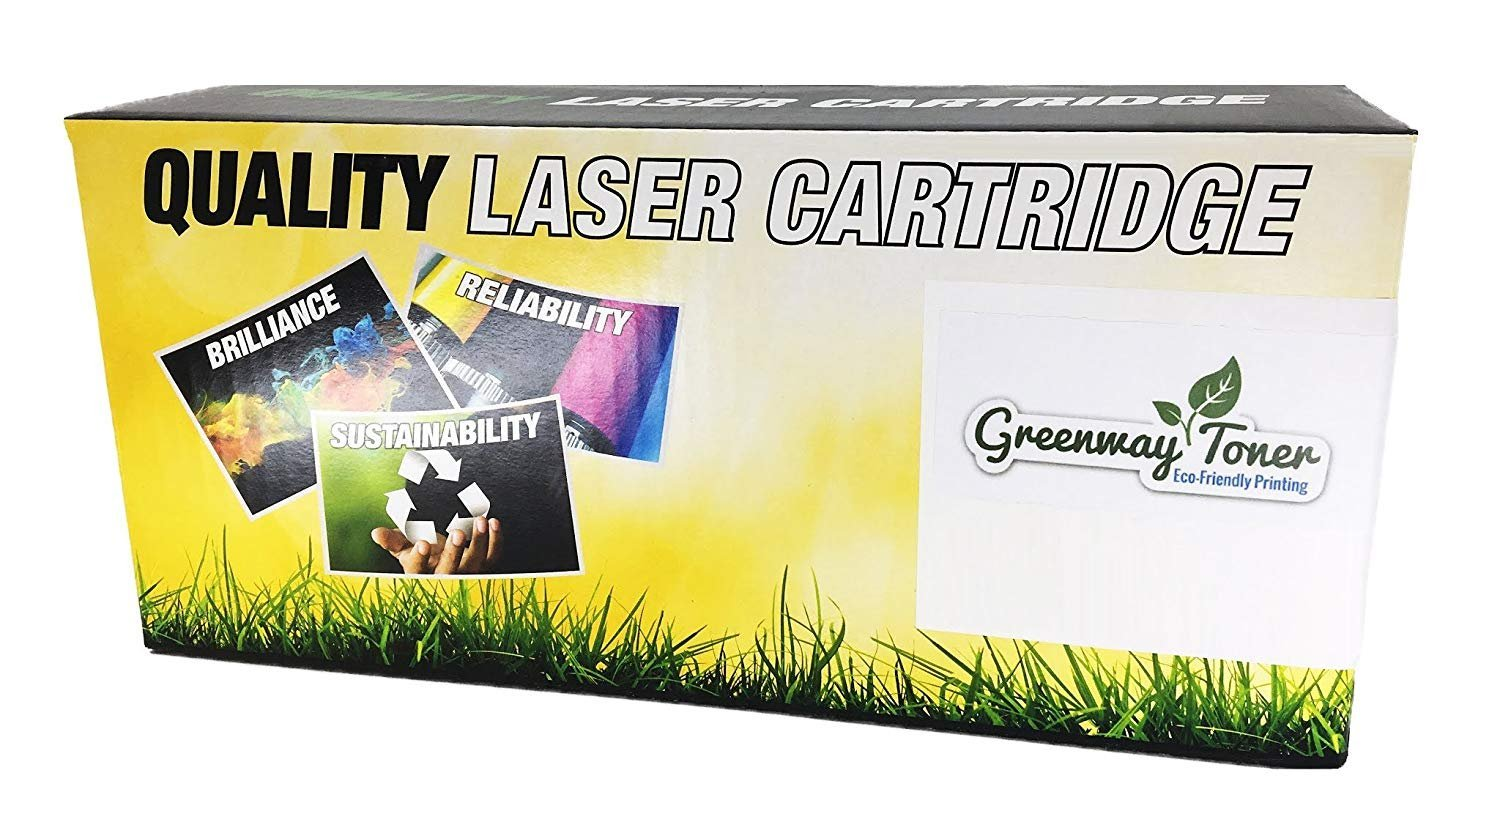 Greenway Toner Genuine Remanufactured Cartridges